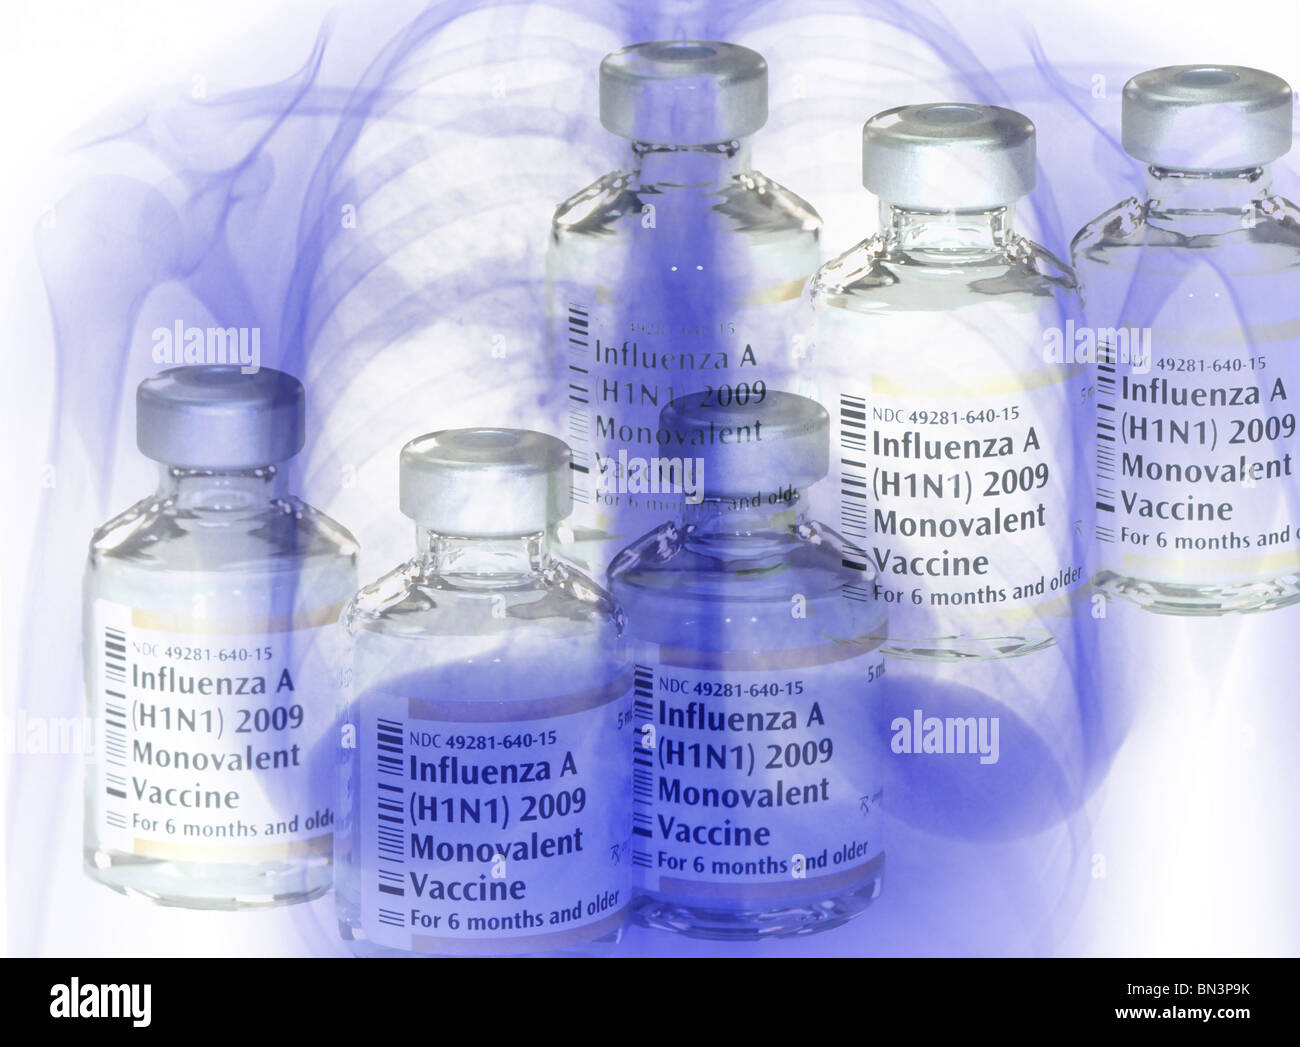 vials of the 2009 H1N1 swine flu vaccine superimposed on a chest x-ray of a patient with swine flu pneumonia Stock Photo